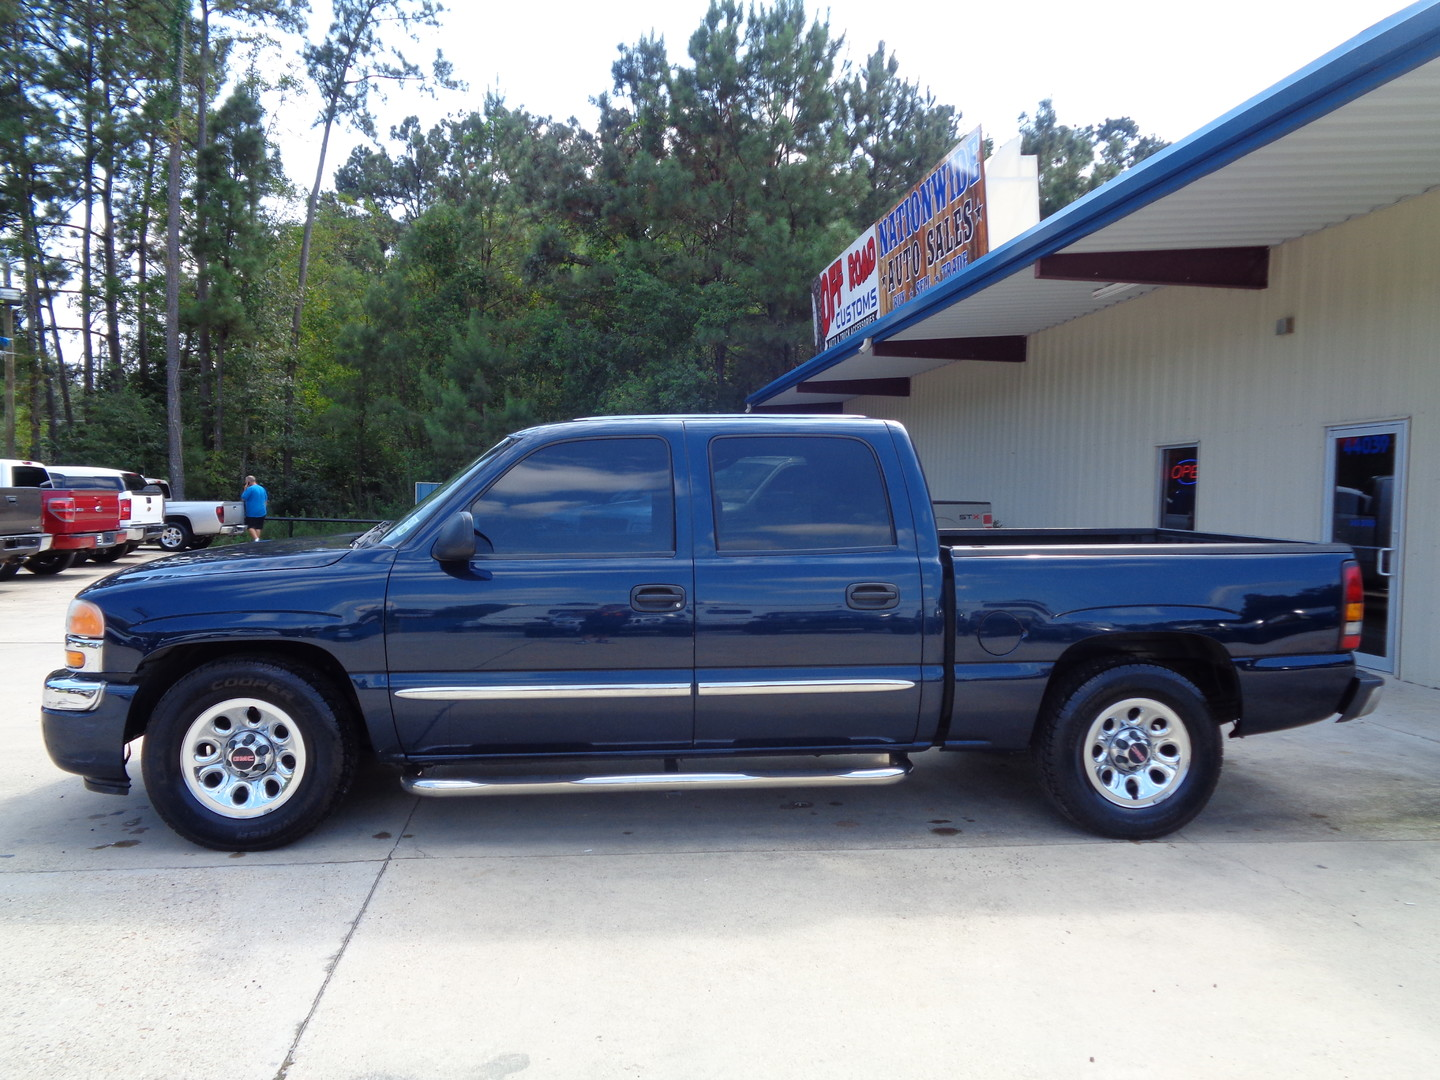 2007 gmc sierra 1500 classic crew cab city louisiana nationwide auto sales. Black Bedroom Furniture Sets. Home Design Ideas